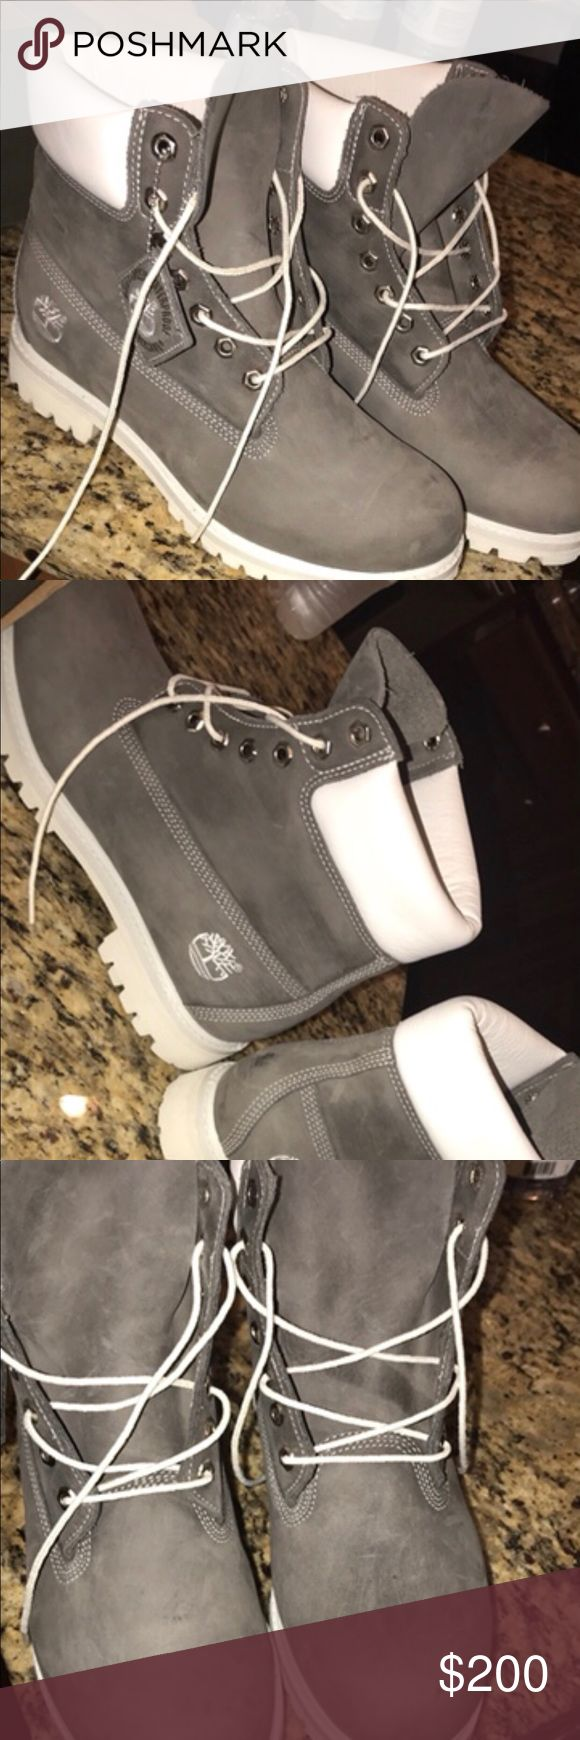 white and light grey custom timbs White and grey timbs. Never been worn made from the timberland website. Got them for close to $300. Asking for atleast $180-$200. Brand new sise 9 in men 11 in women Timberland Shoes Boots